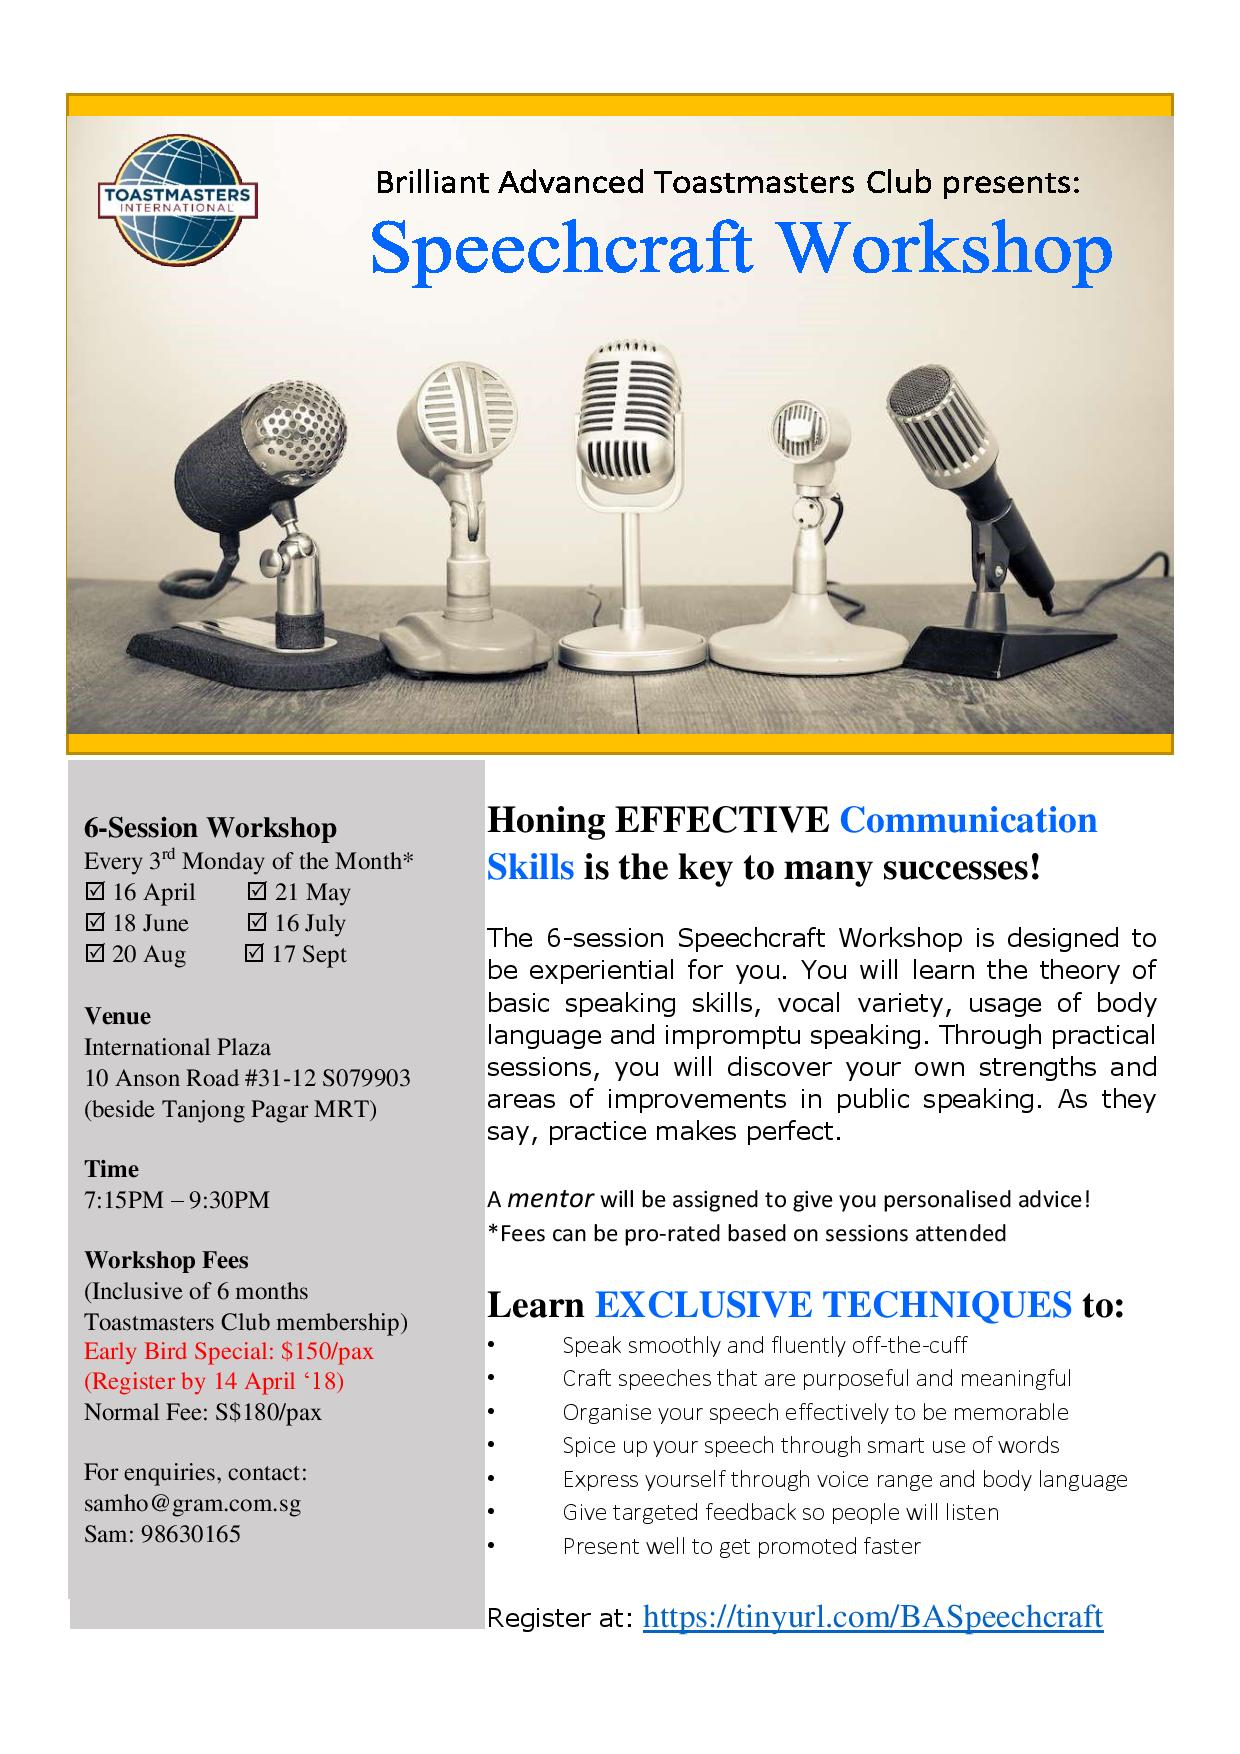 Speechcraft Workshop (Apr to Sep 2018)